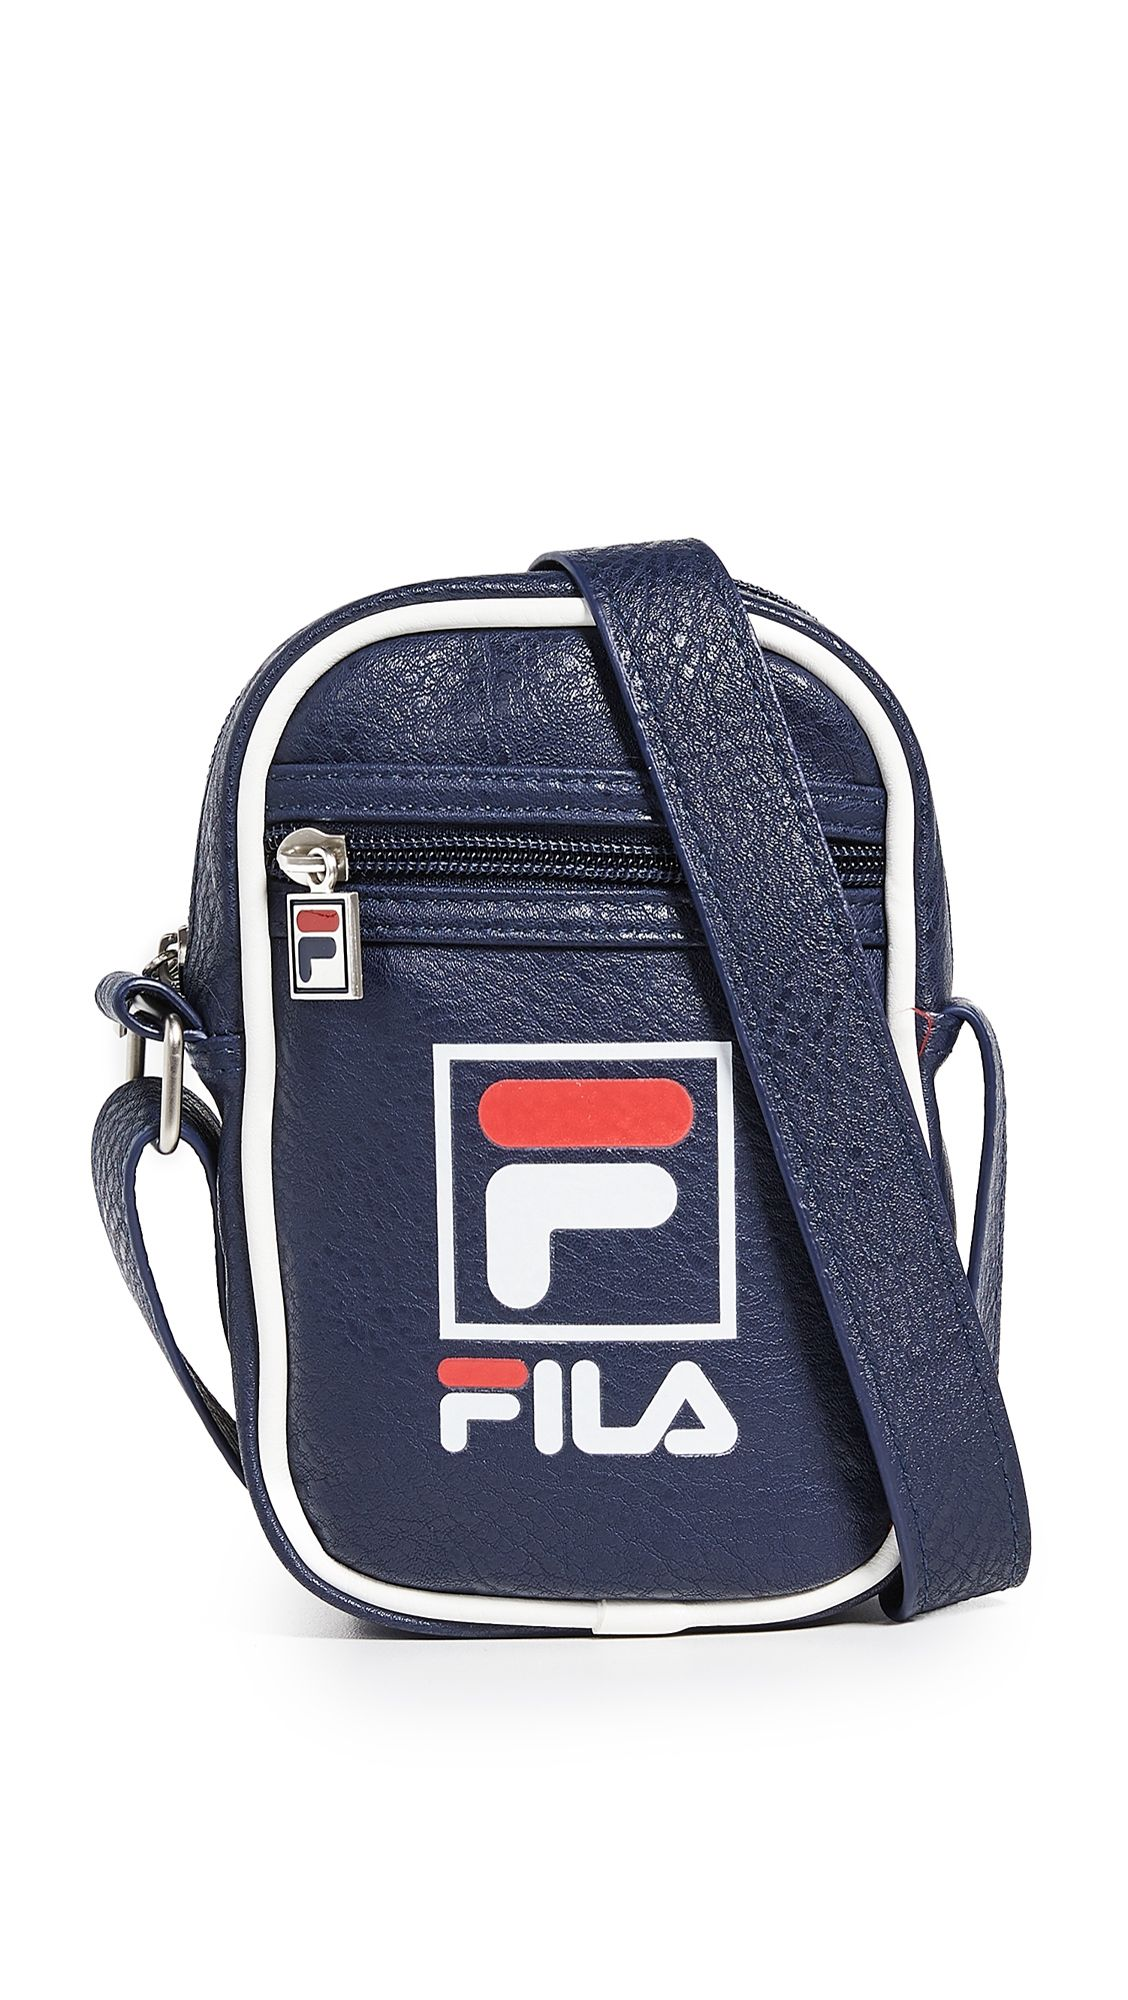 8824939924 FILA MINI SHOULDER BAG. #fila #bags #shoulder bags #leather #lining ...